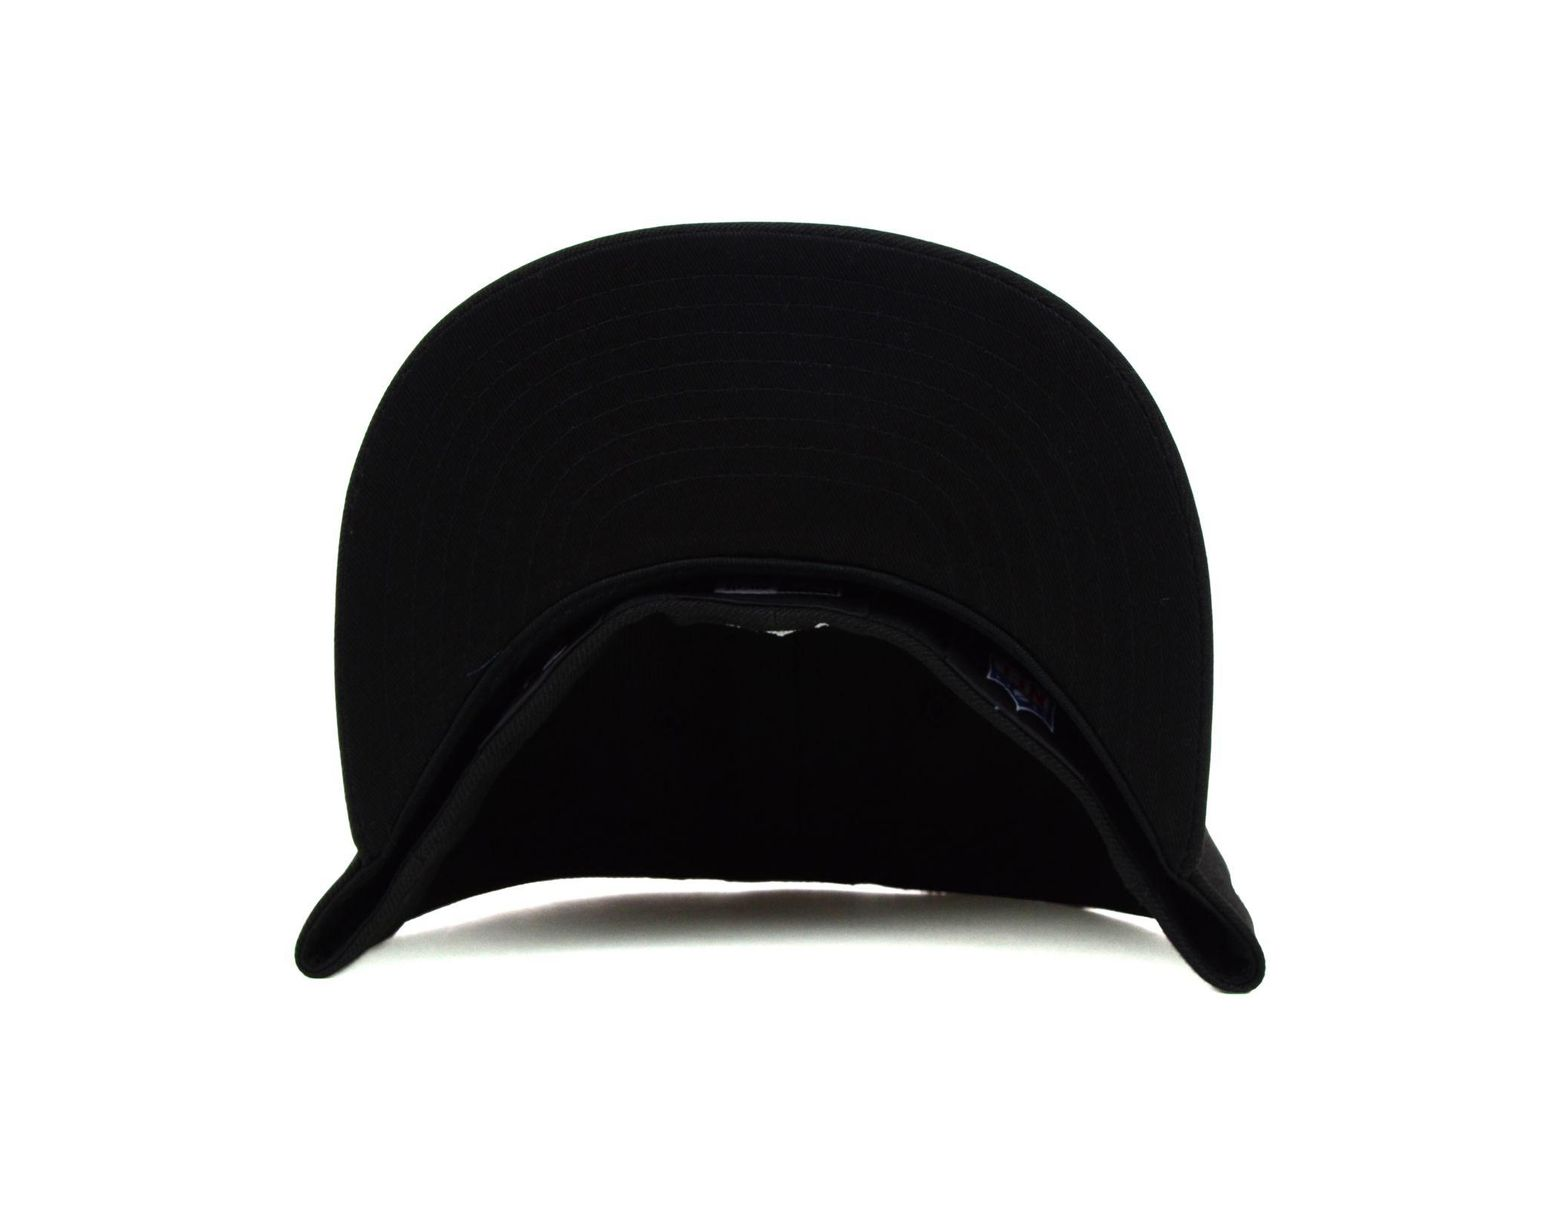 promo code b63aa dcc62 KTZ Tampa Bay Buccaneers Black And Gray Basic 59fifty Cap in Black - Lyst